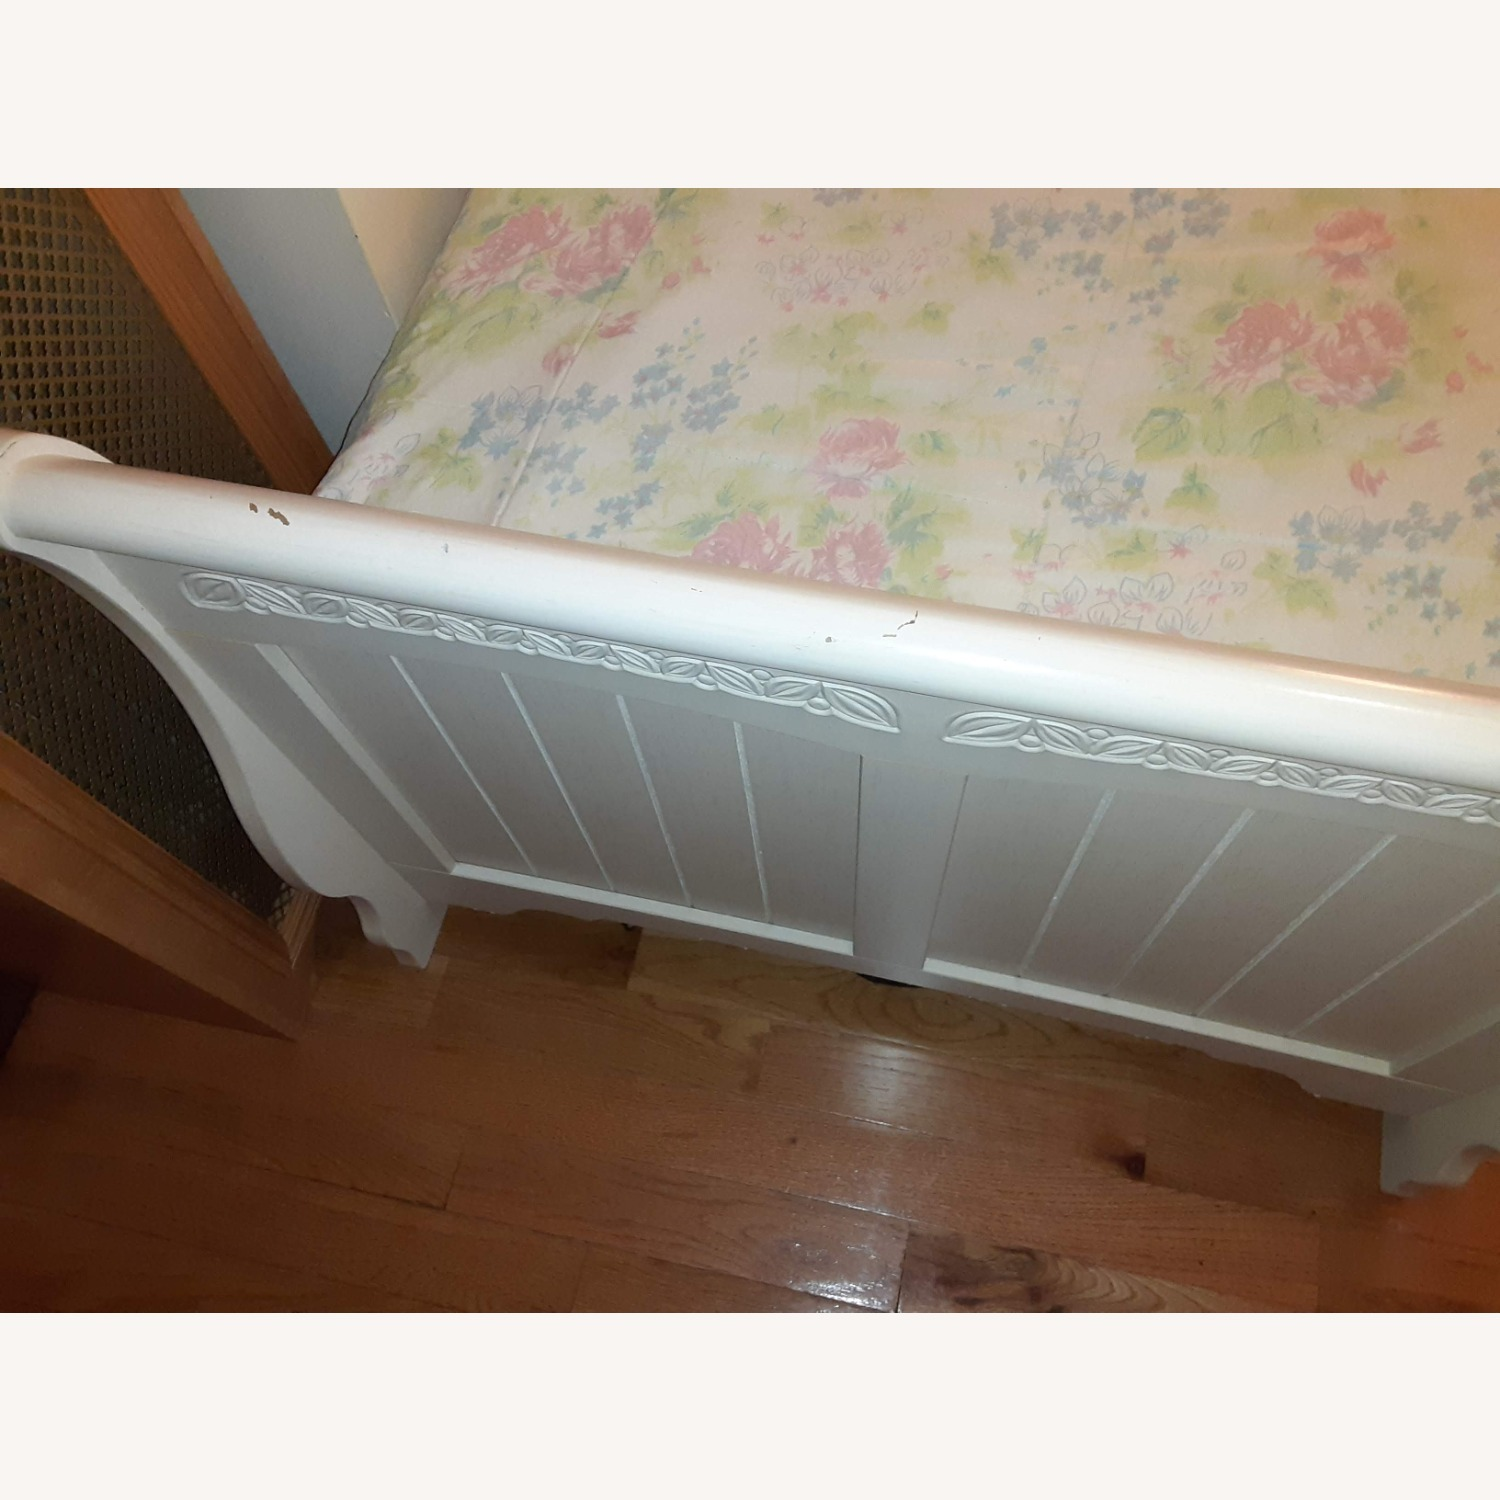 Ashely Furniture Twin Bed Frame - image-2